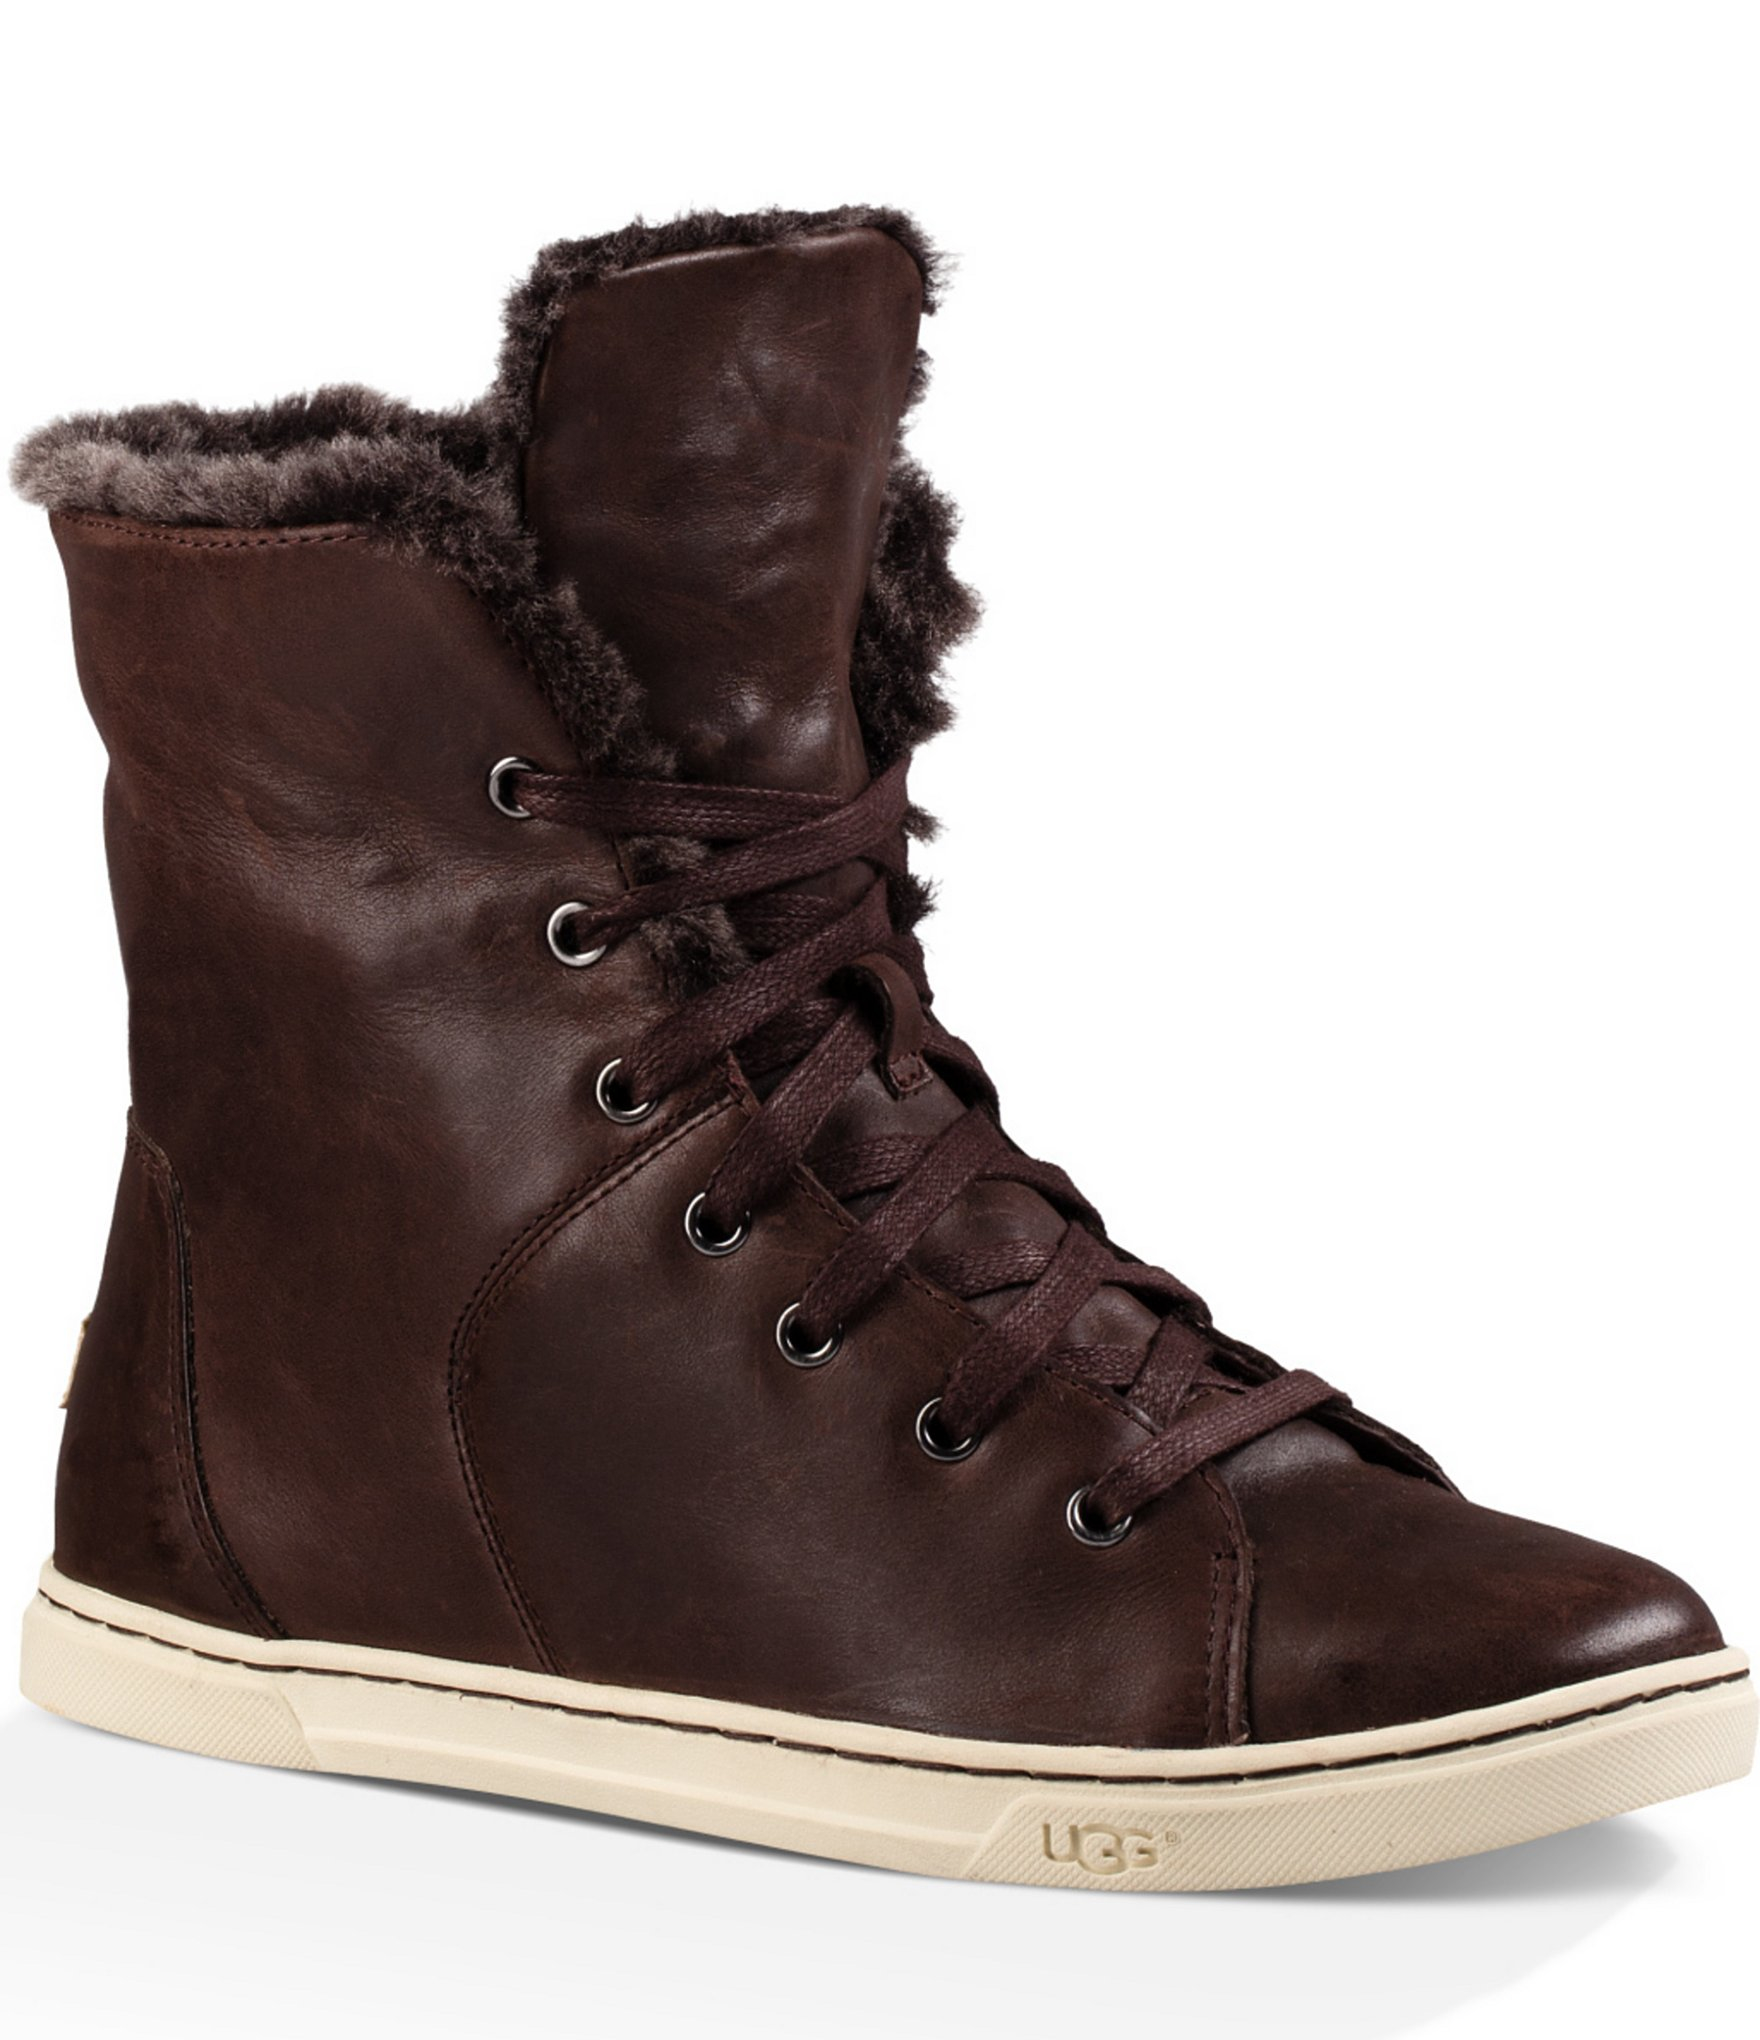 Lyst Ugg Croft Luxe Quilt Lace Up Sneakers In Brown